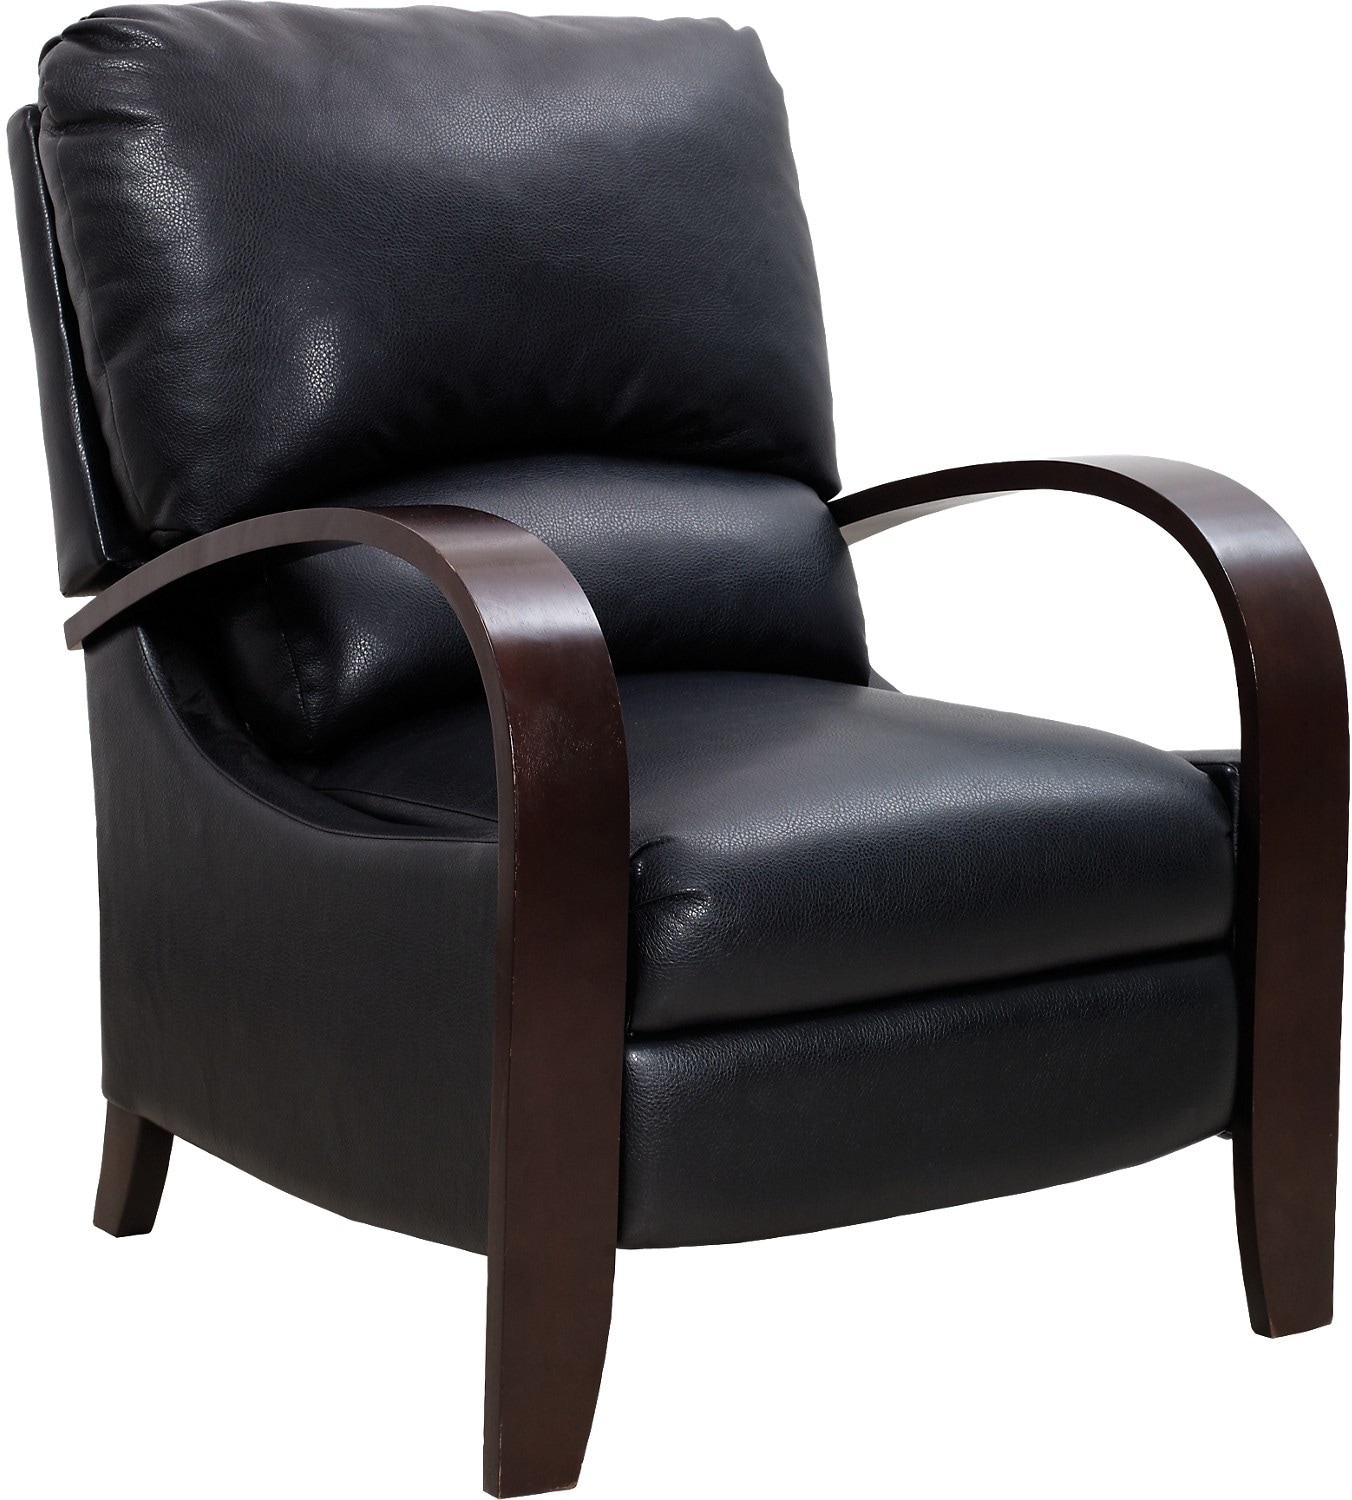 Accent Chairs Prices Aaron Black Reclining Accent Chair The Brick